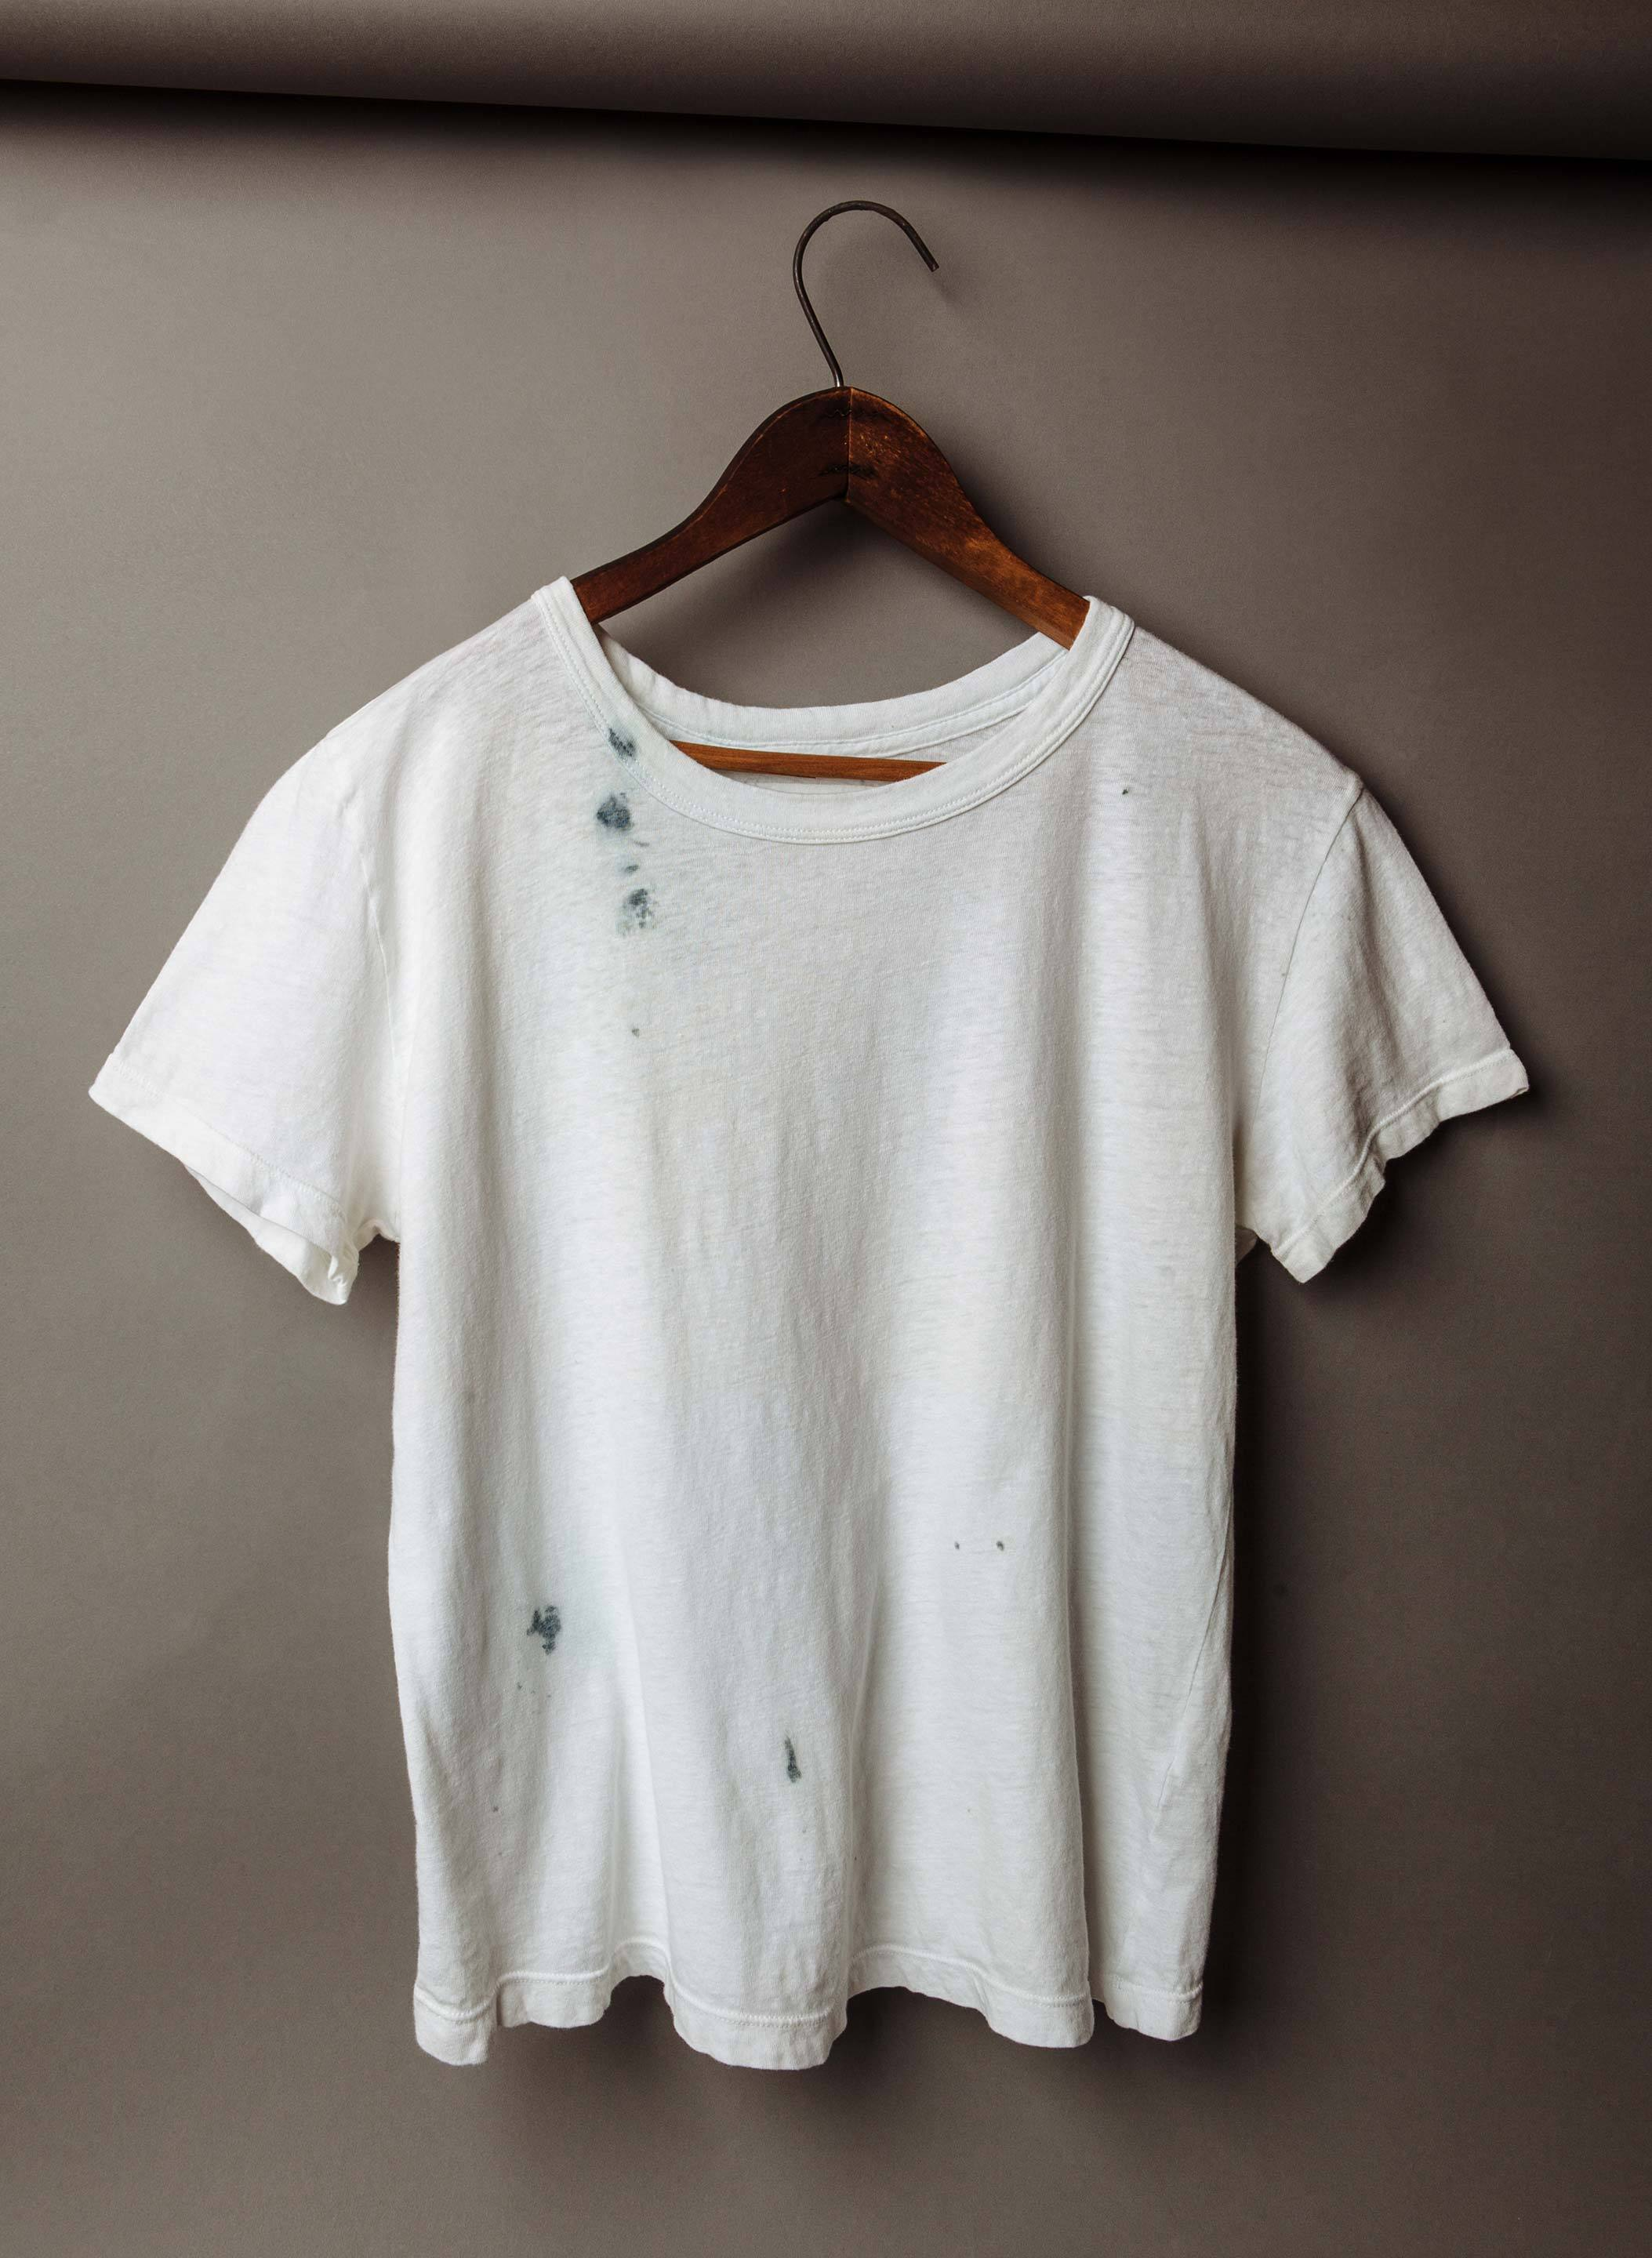 imogene + willie - drop tee in indigo cast